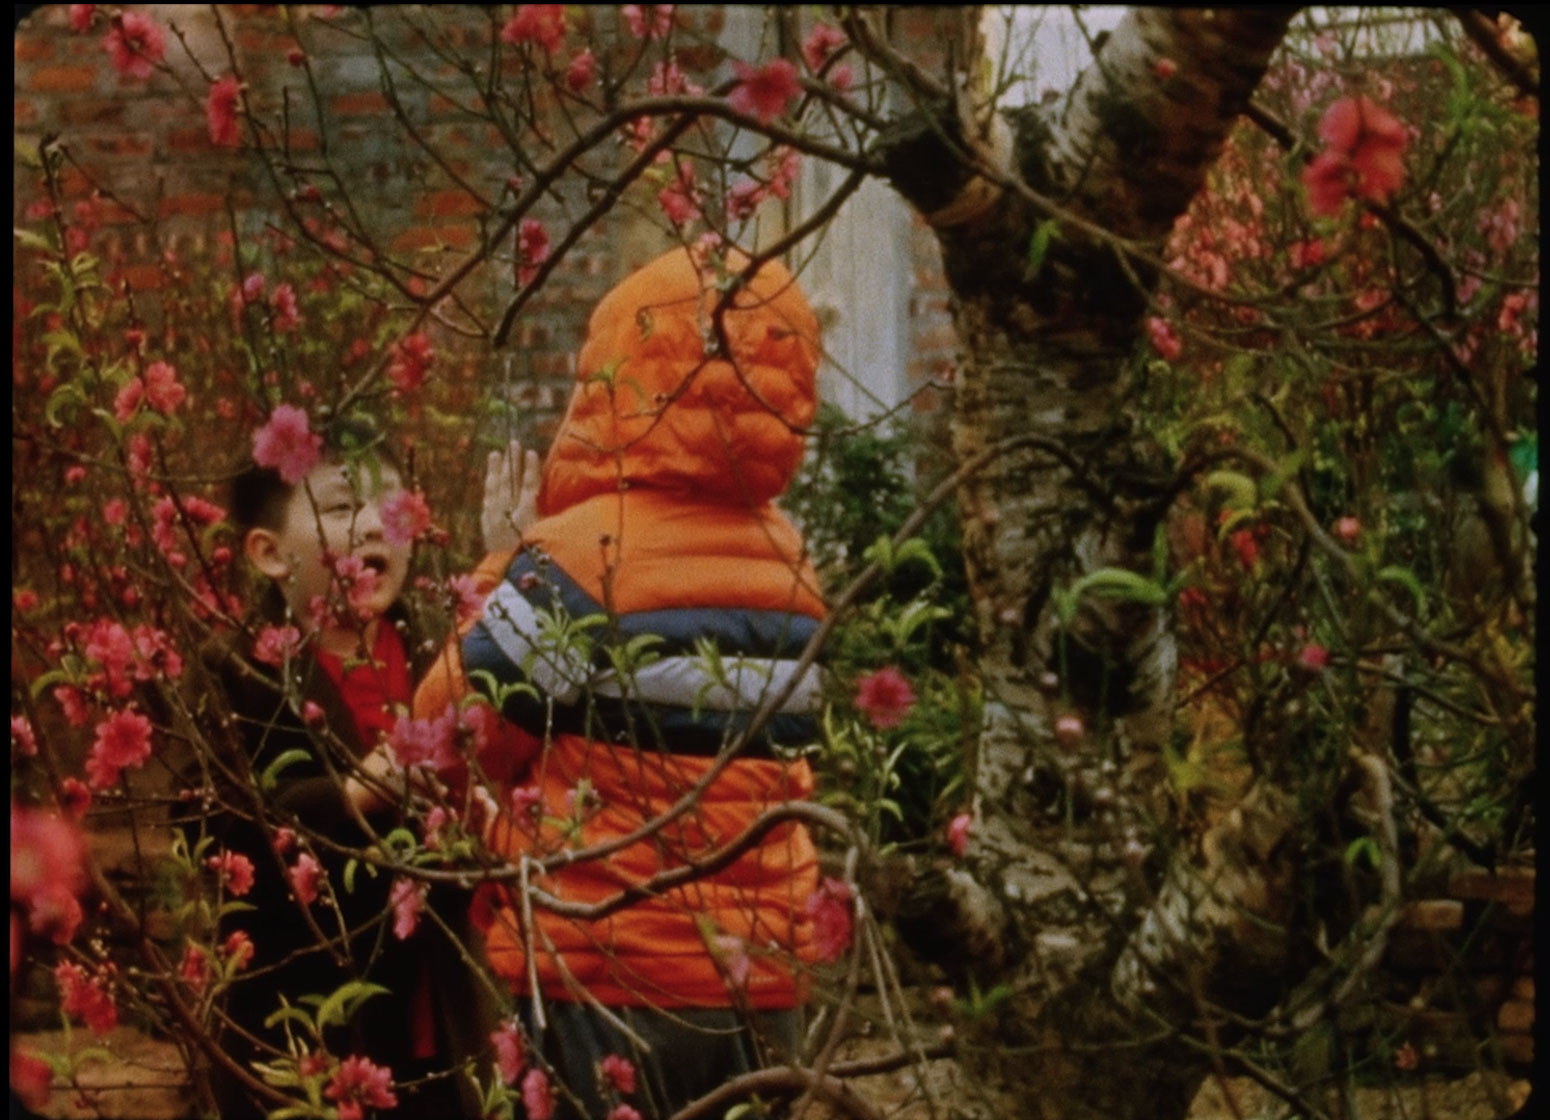 two small children, one facing the camera and wearing a red shirt and dark jacket and one facing away from the camera and wearing an orange hooded coat, stand in a grove of read-leafed trees